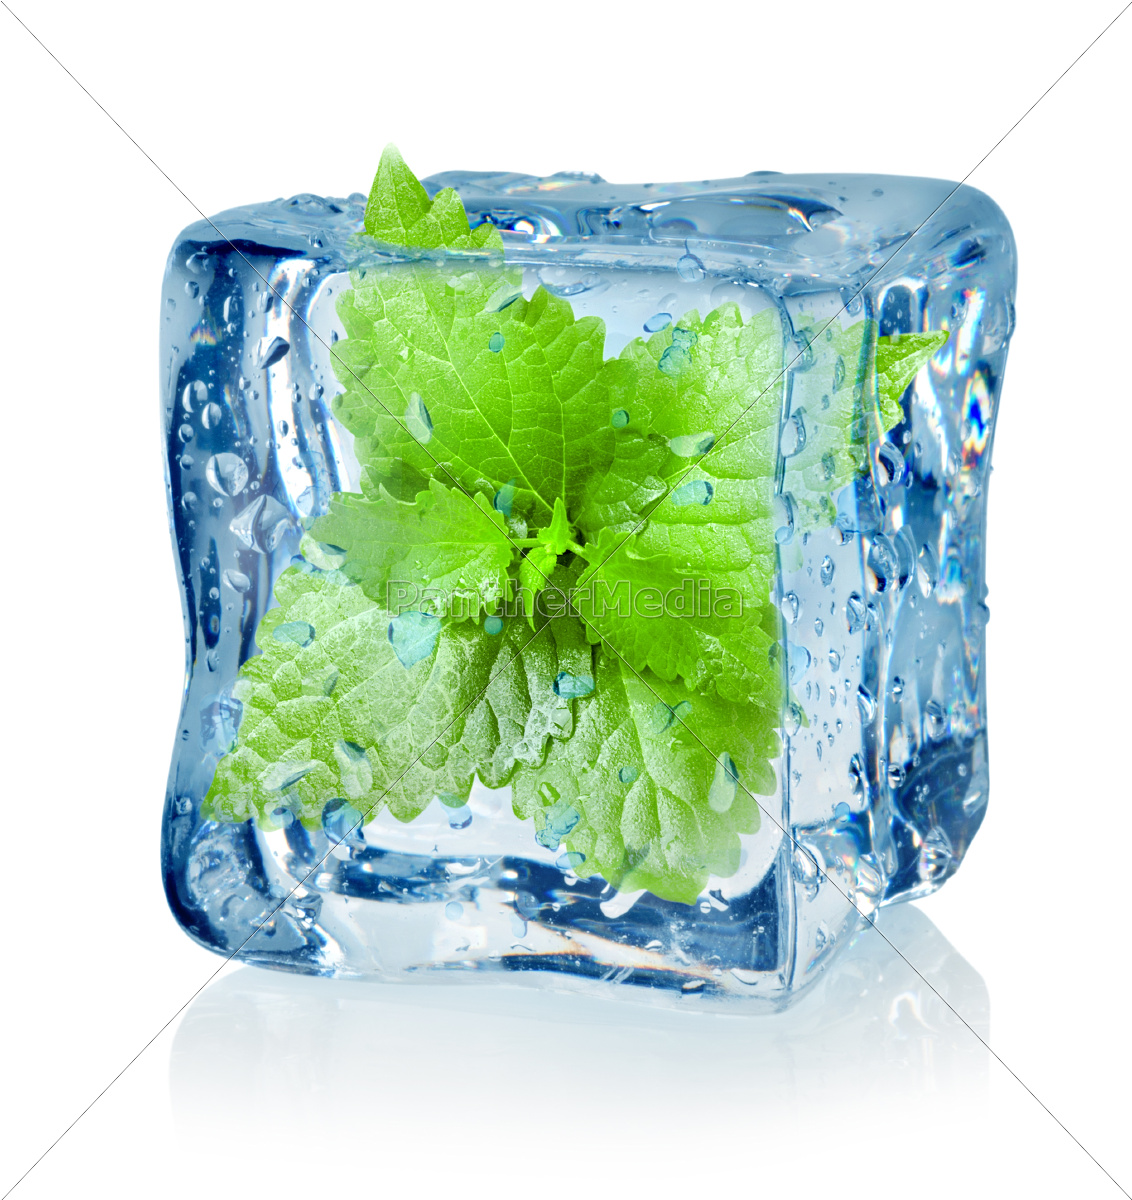 ice, cube, and, mint - 10125861